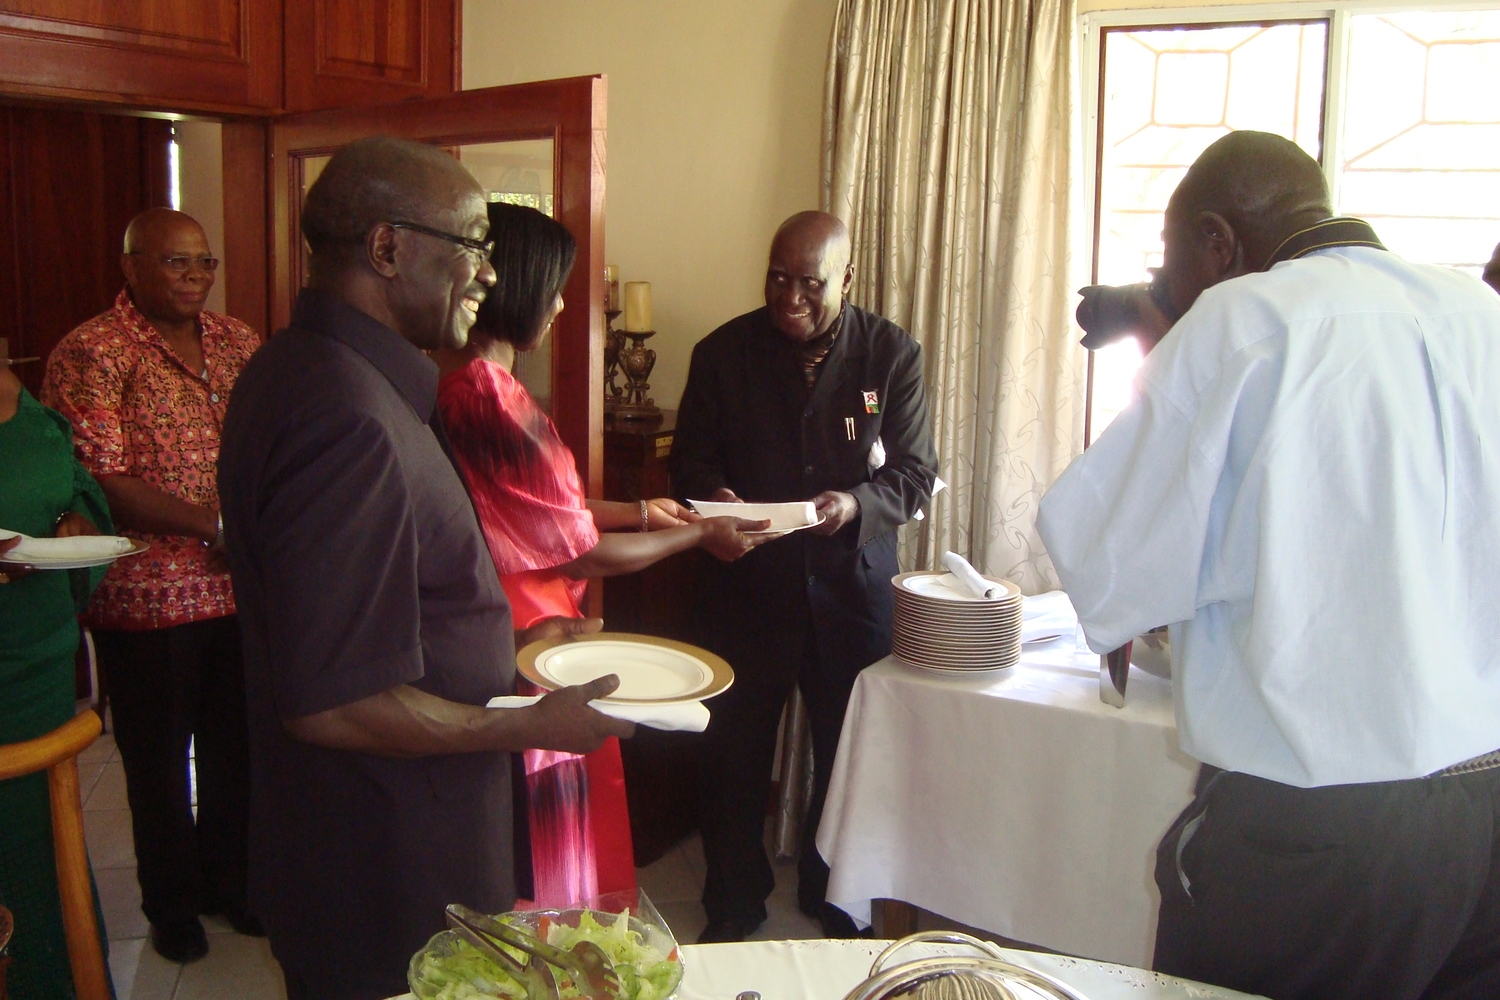 """H.E. President Kenneth Kaunda (in """"Kaunda Suit"""") with Alfred Latigo and Mrs. Latigo at a Luncheon after book launch. GIDE has an office for Southern Africa in Lusaka, Zambia."""